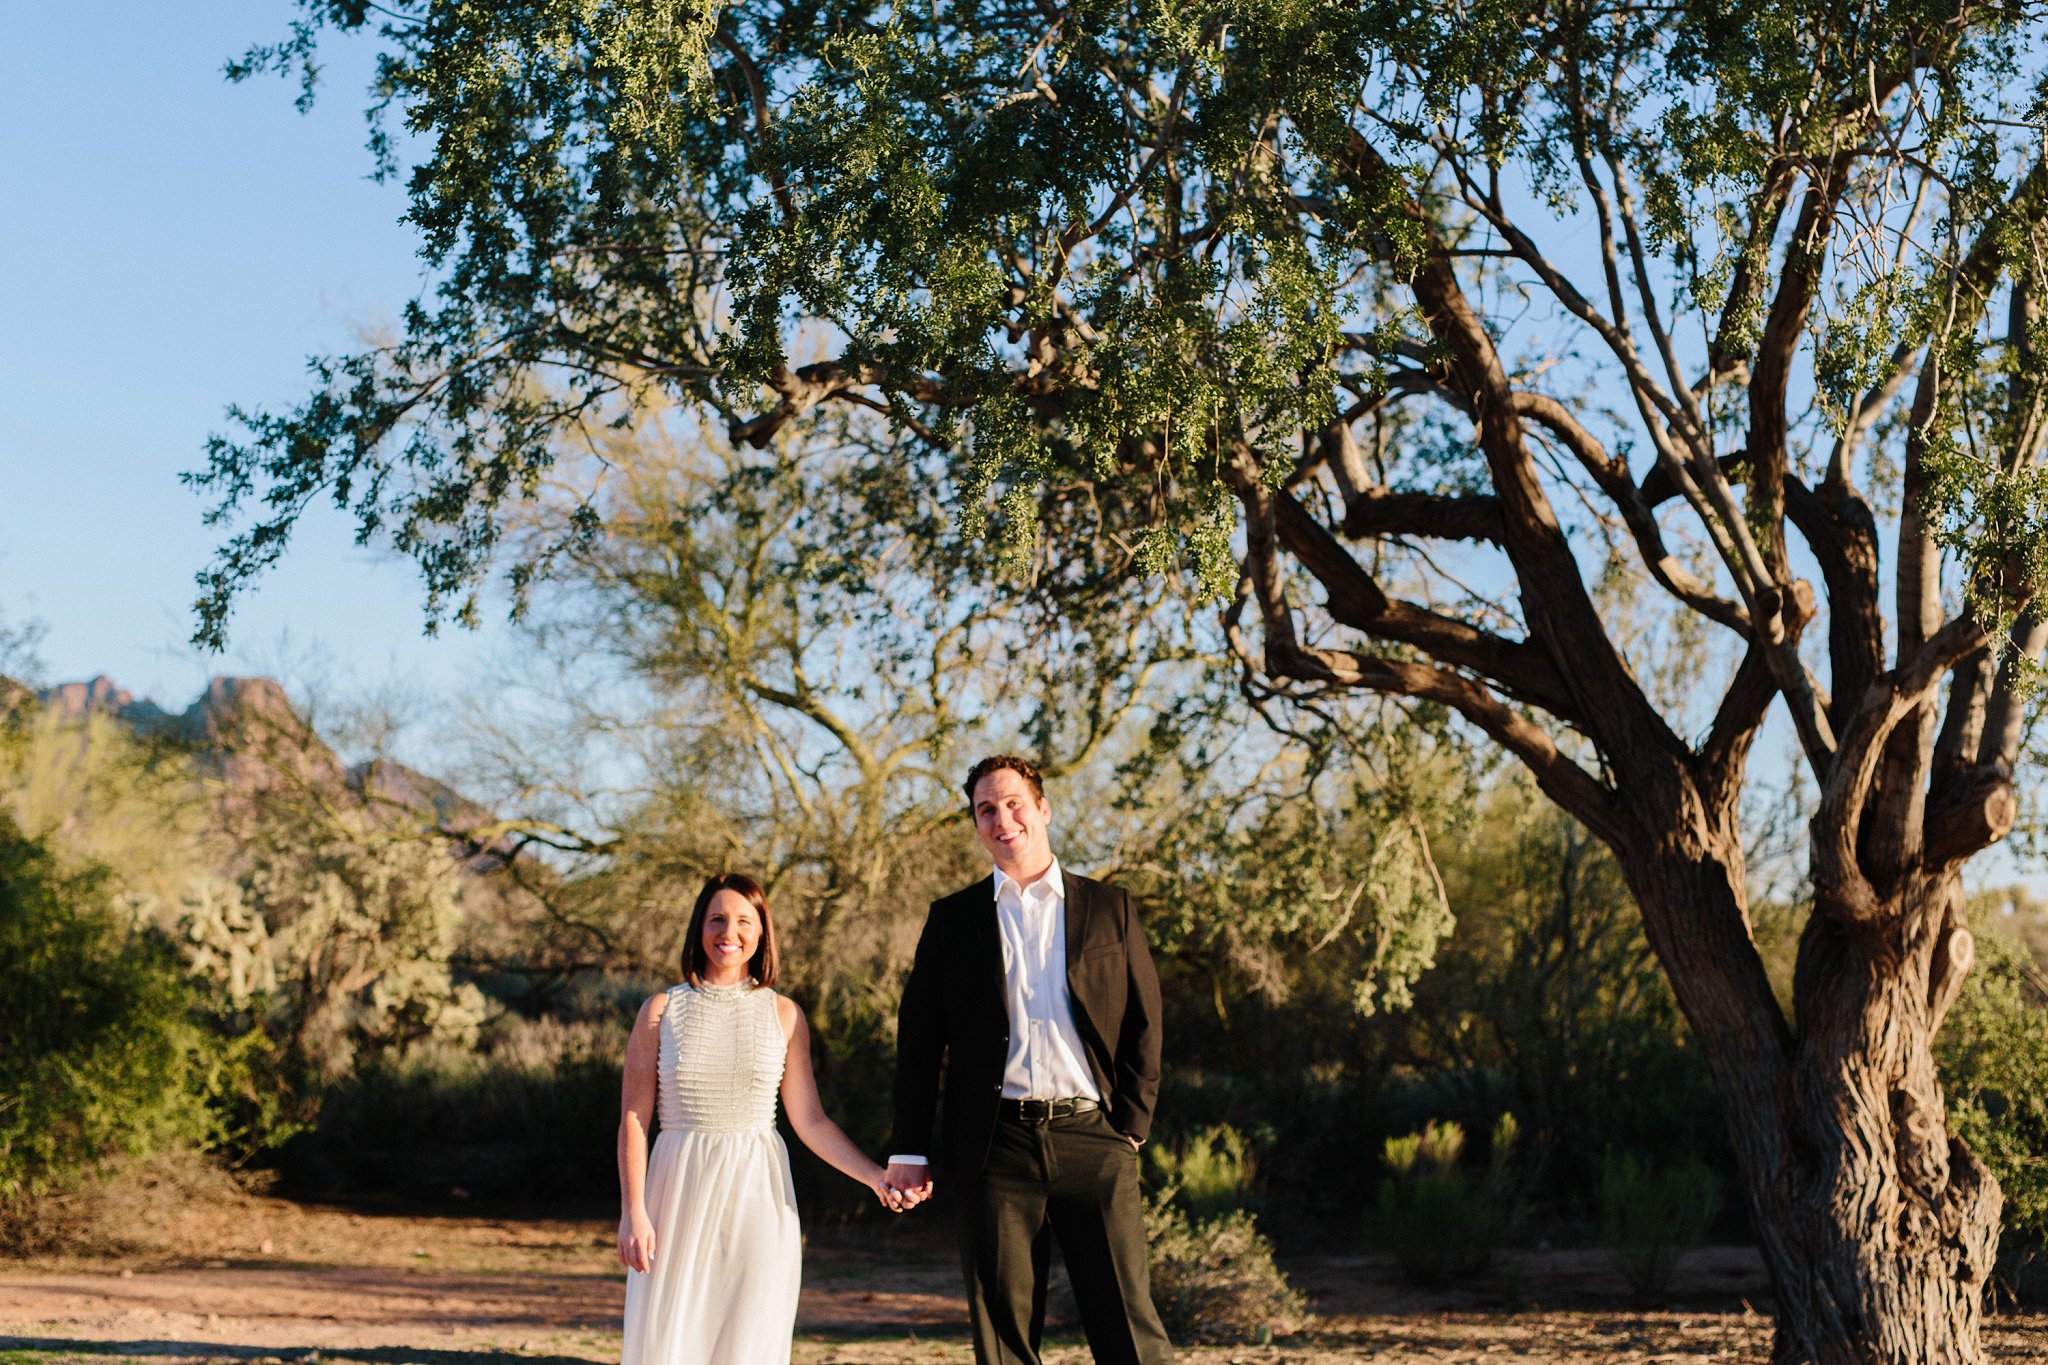 Arizona desert elopement photography